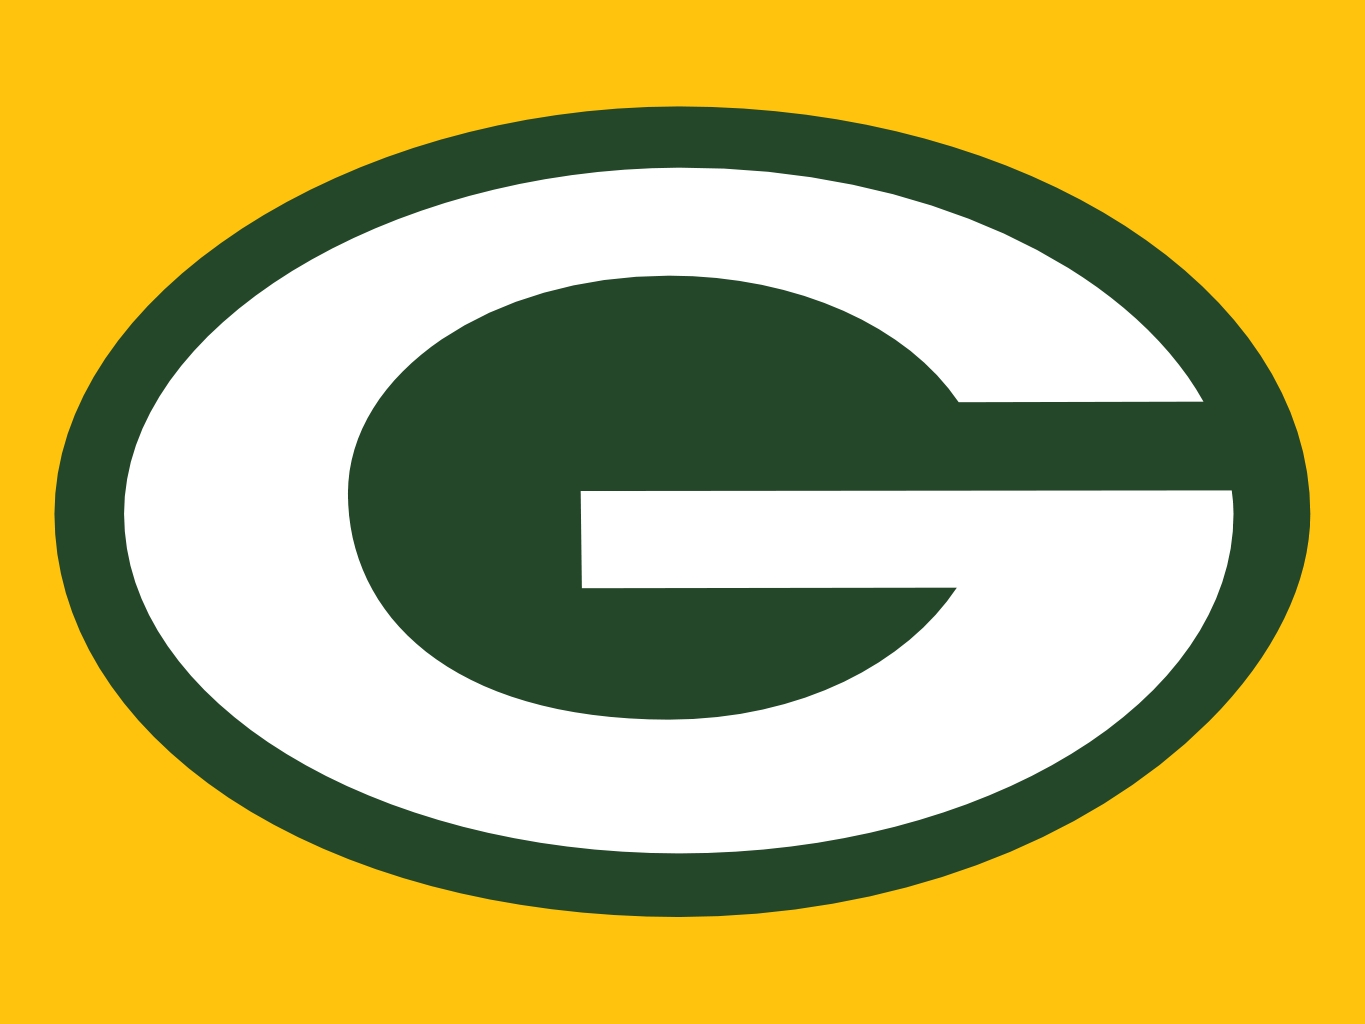 Green Bay Packers Logo Clip Art - Cliparts.co